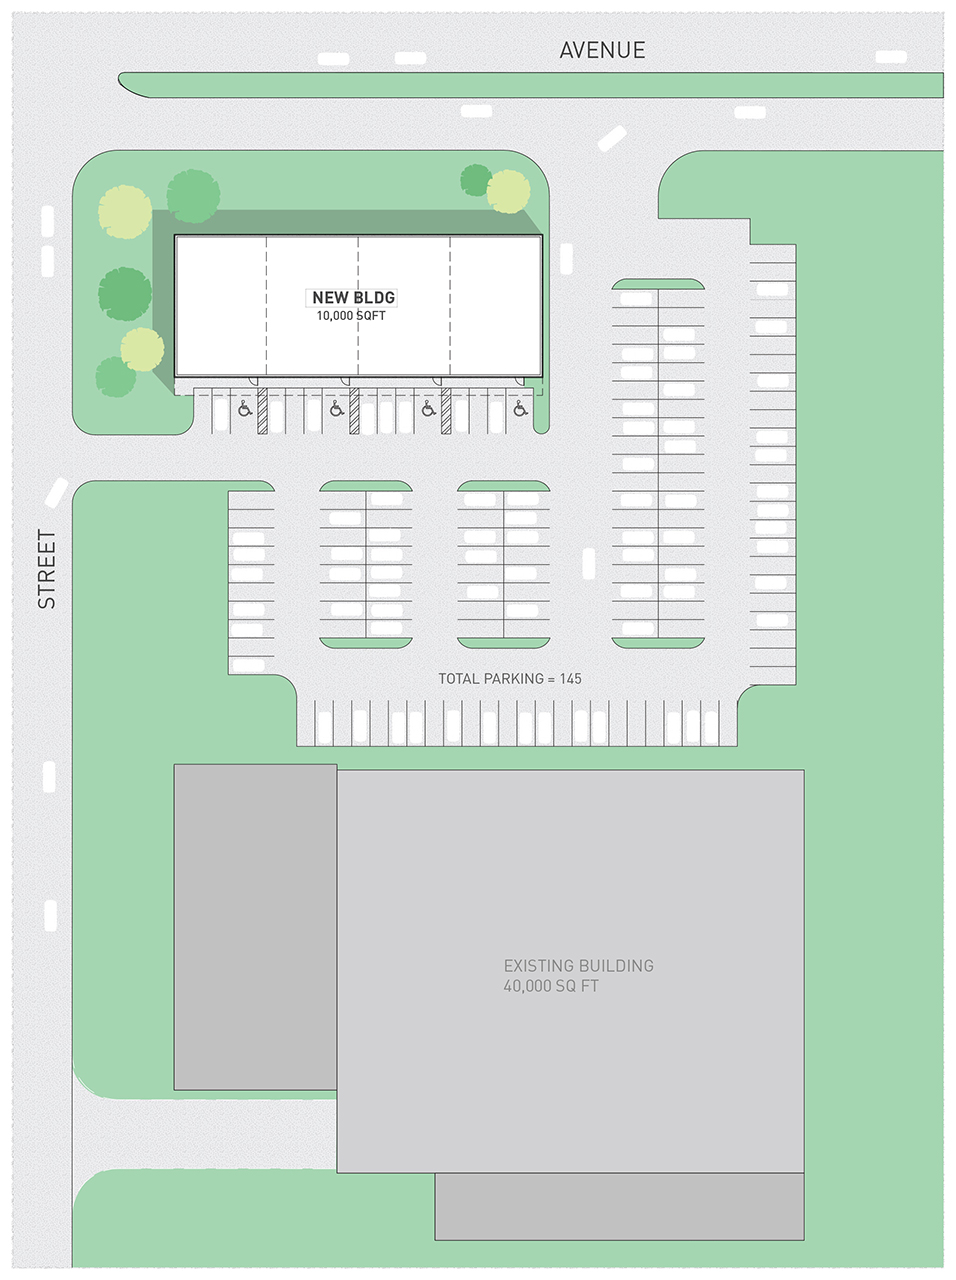 500 Madison site plan.jpg